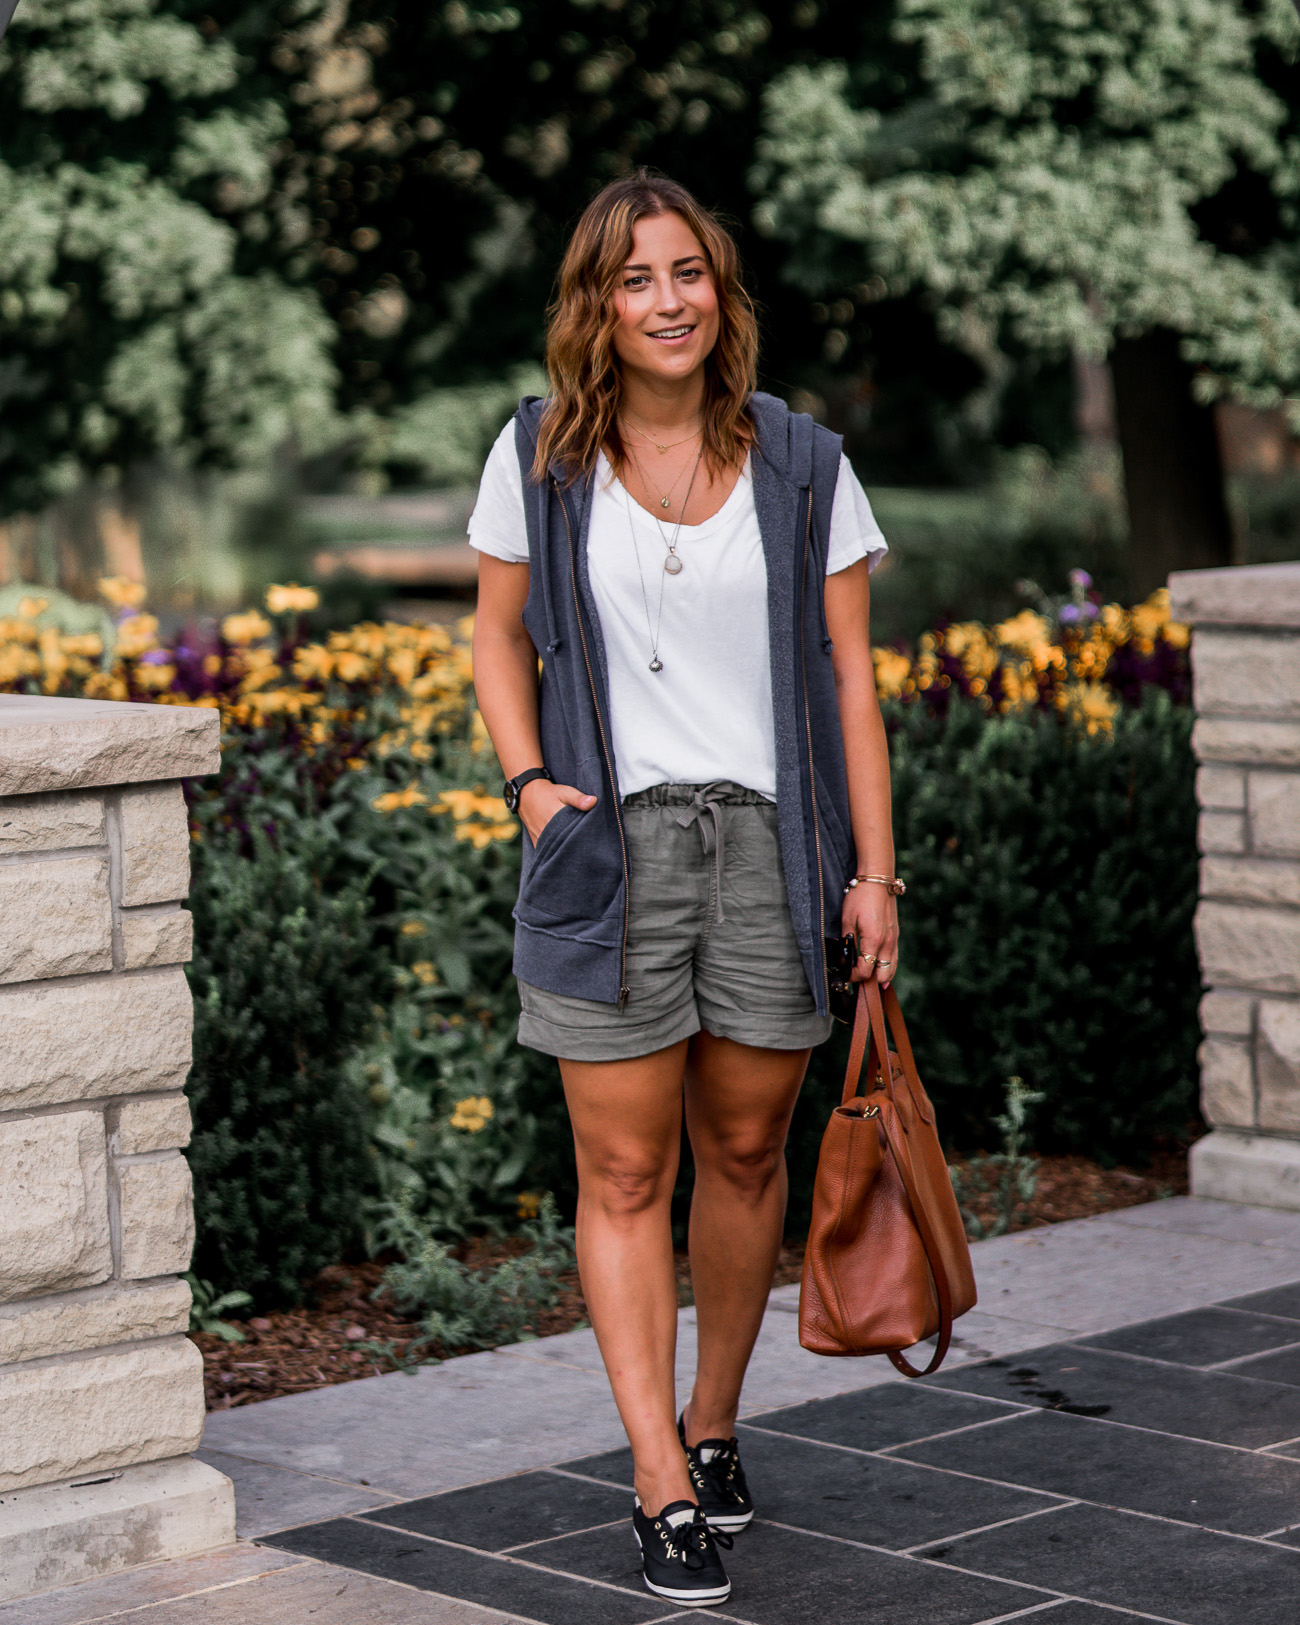 Toronto lifestyle and fashion blogger, Jackie Goldhar from Something About That, is wearing a late summer outfit, featuring a hoodie vest that will transition into fall